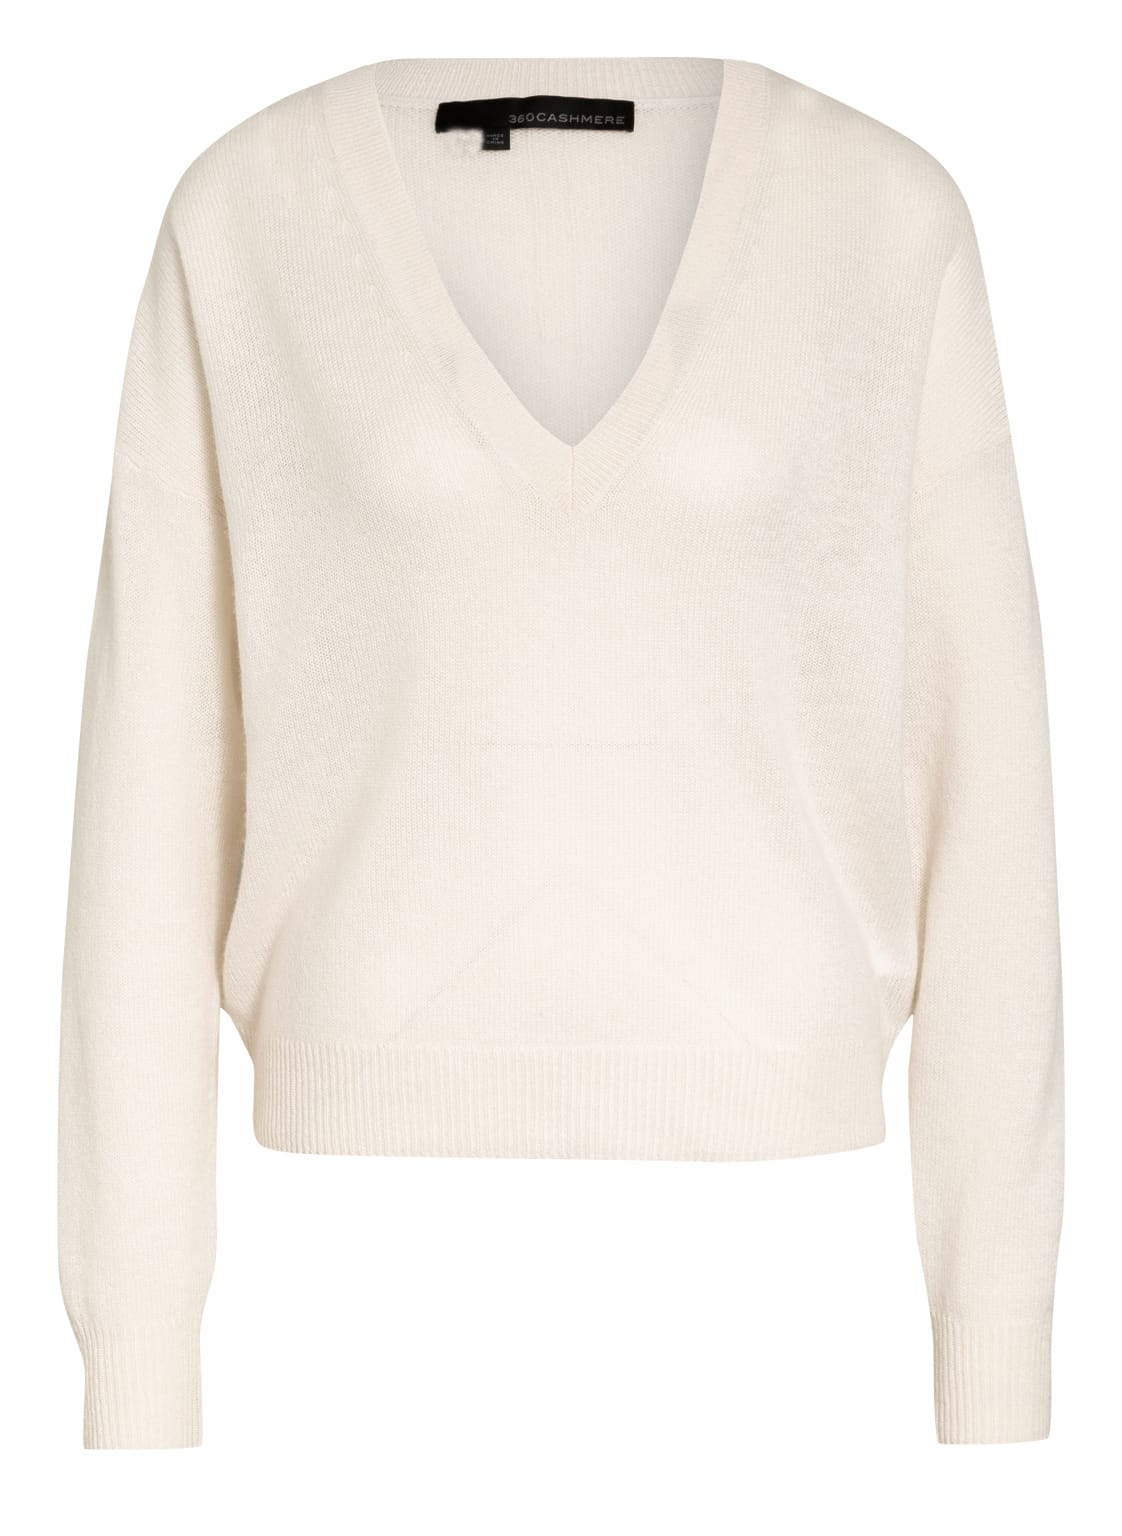 Image of 360cashmere Cashmere-Pullover Alexandria weiss